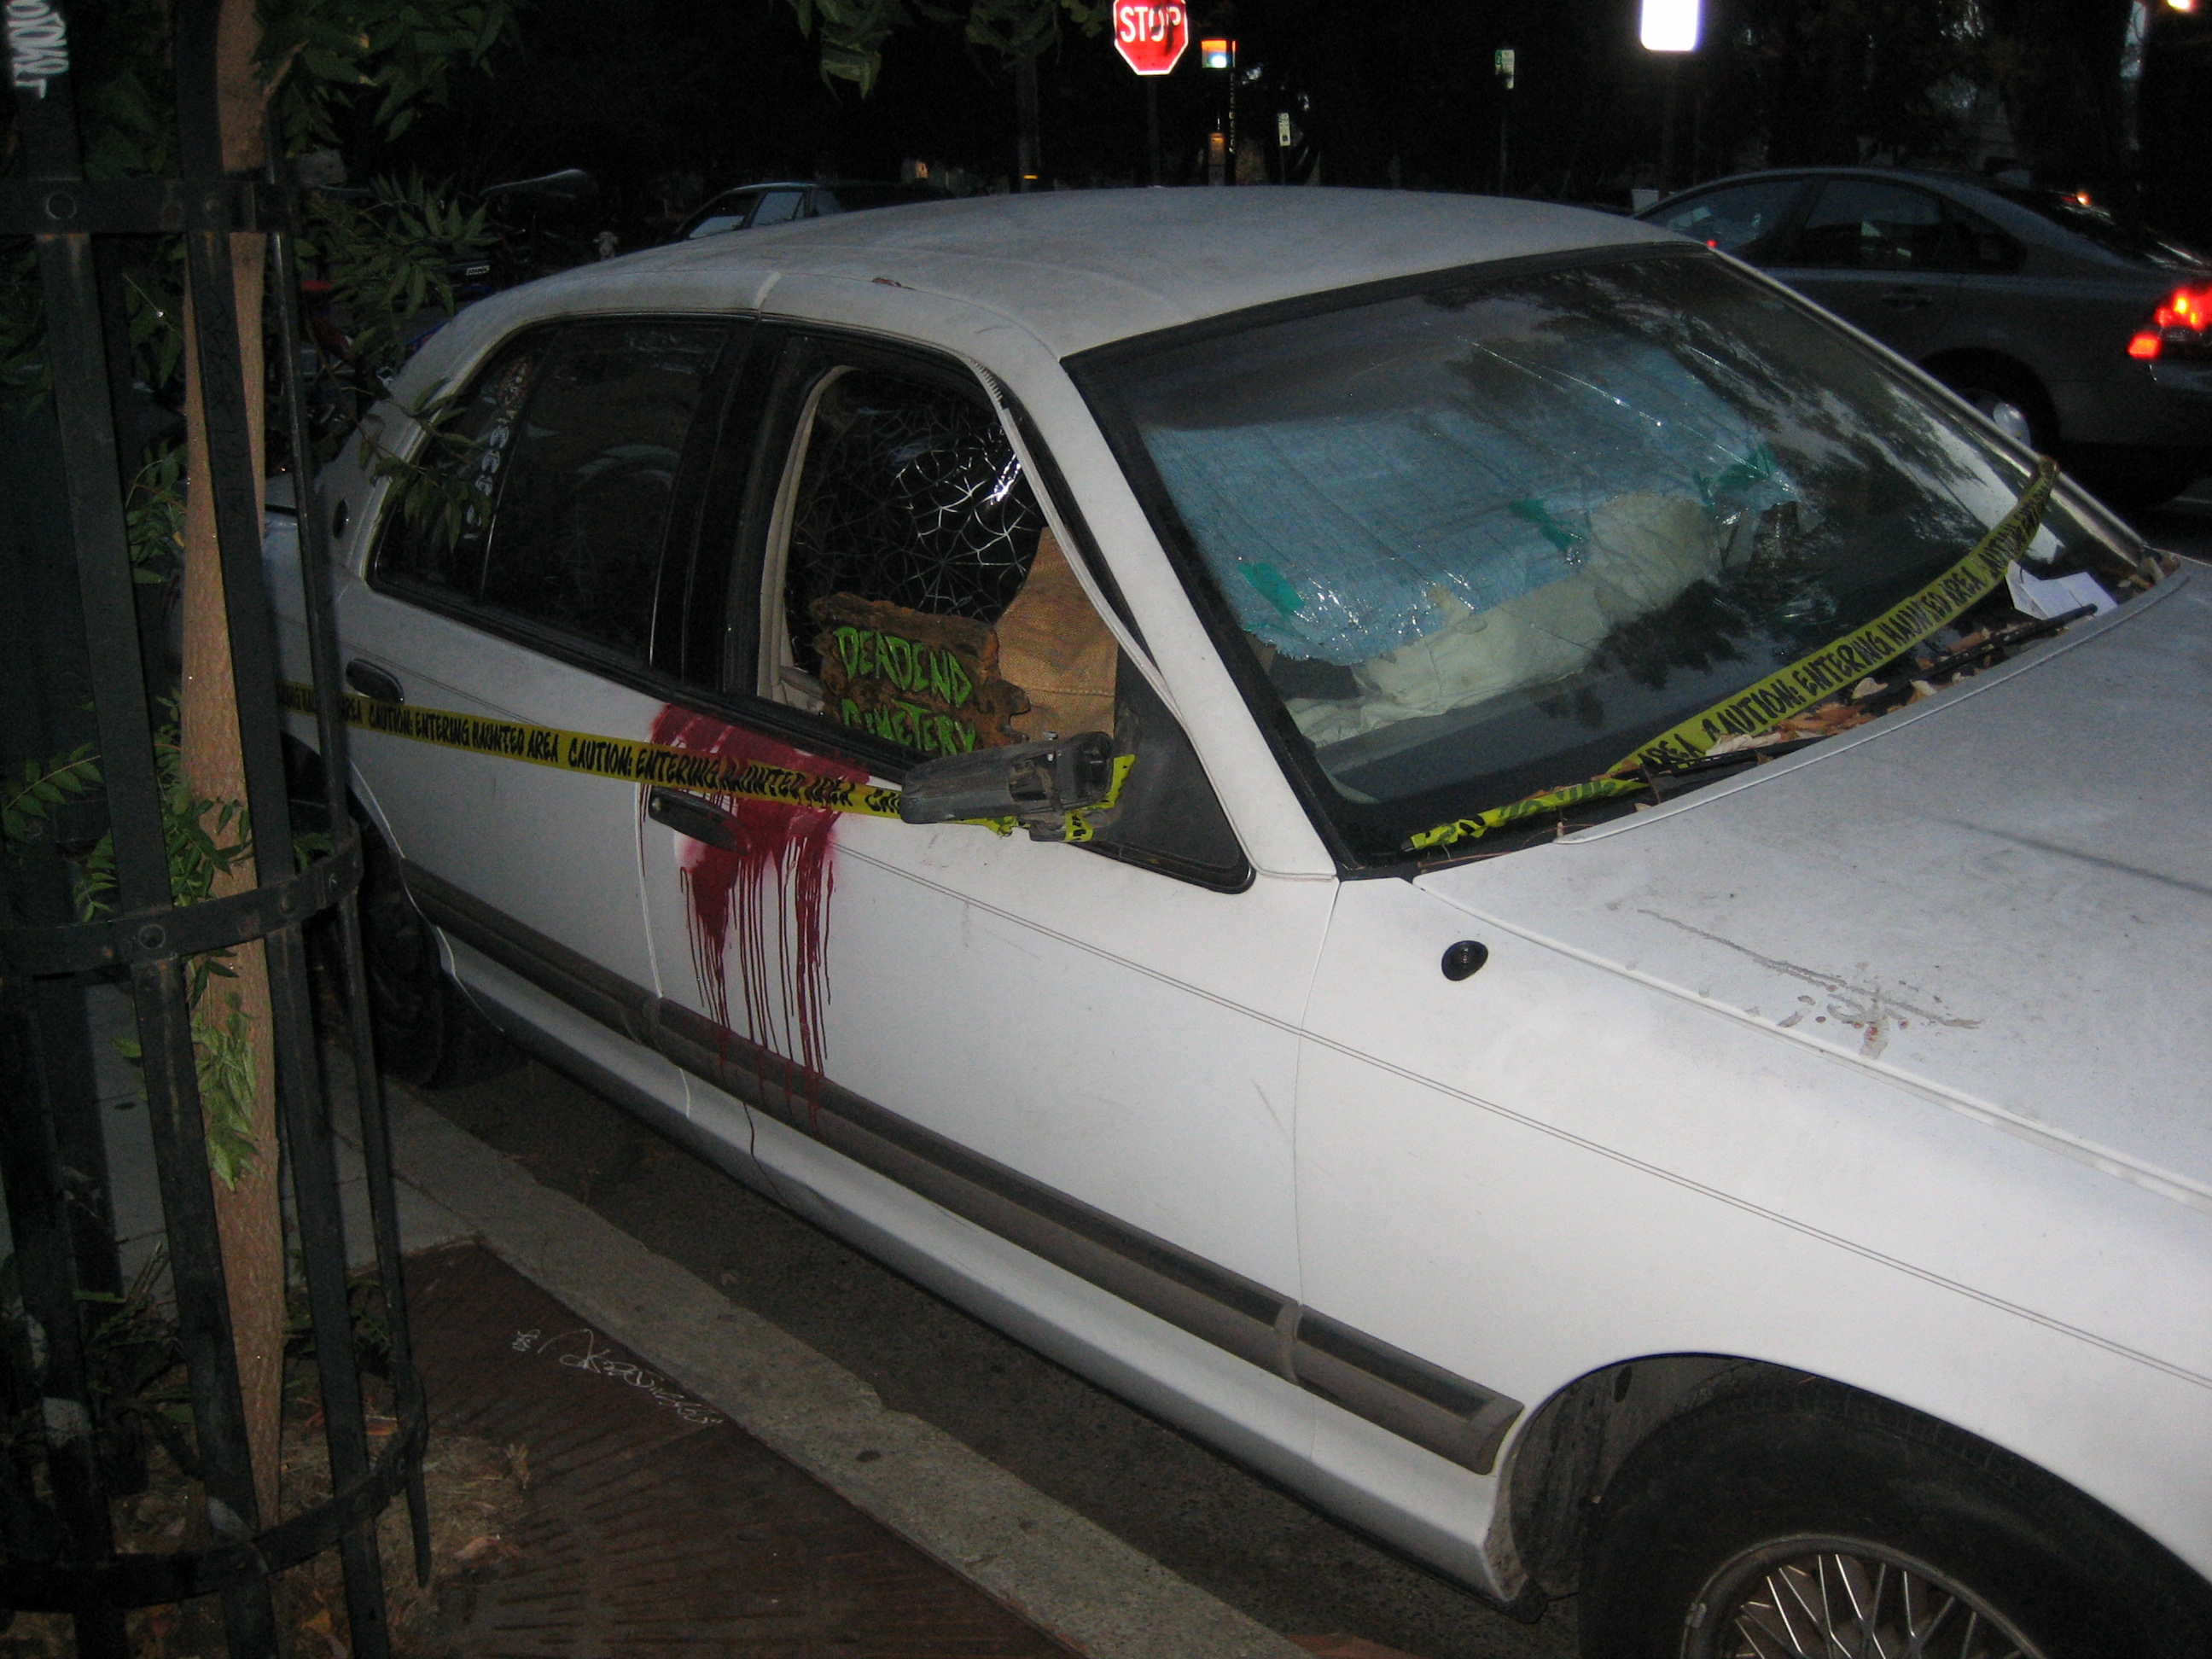 Haunted car on Bowditch, next to Crossroads